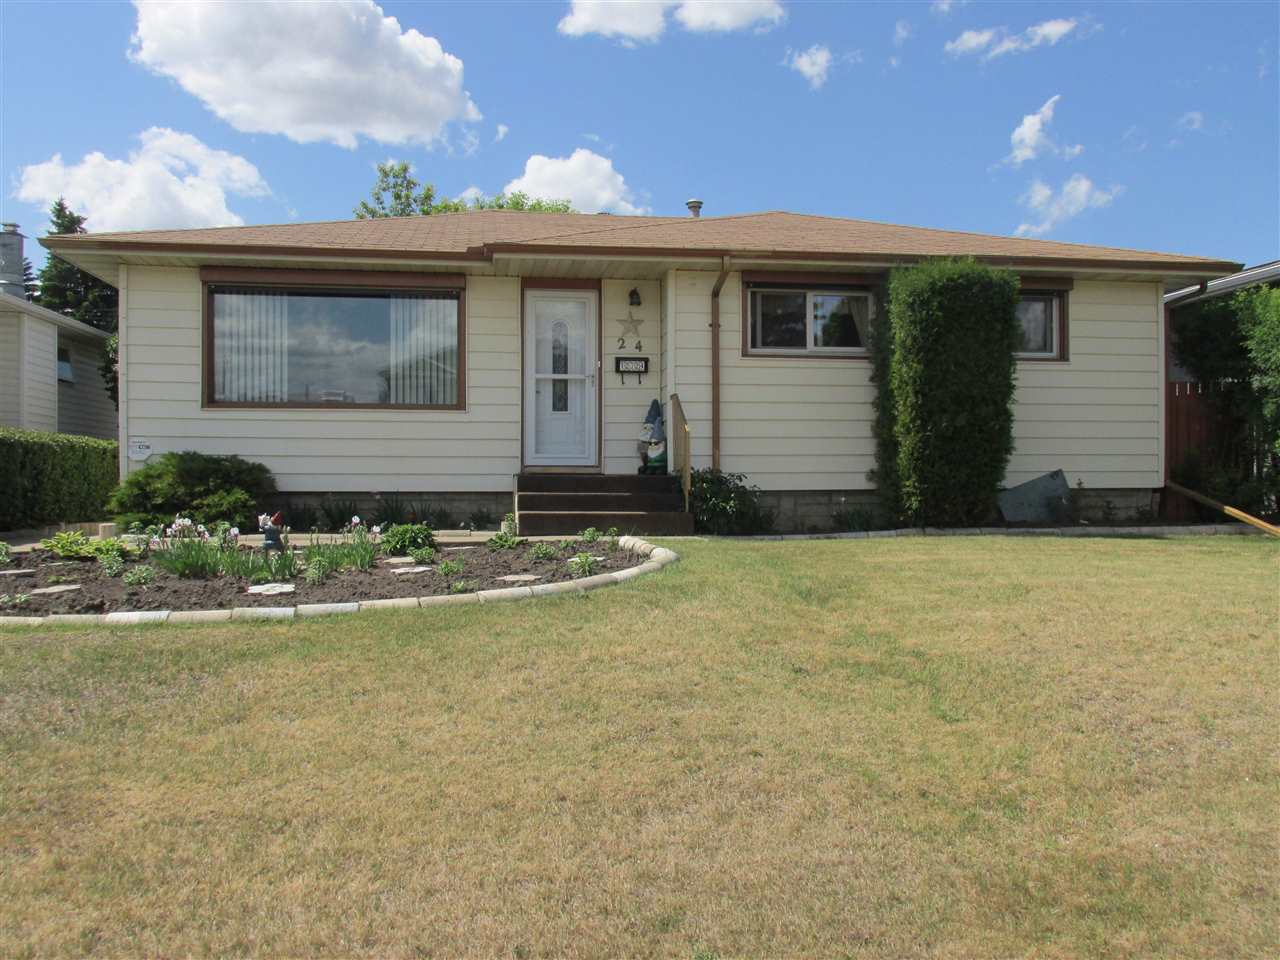 Beautiful interior & well taken care of upgraded 4 bedroom, 2 full bath, bungalow with over 2000 sq. ft. of living space. This spotless home features all and NEW TRIPLE PANE WINDOWS, NEW EXTERIOR DOORS, including roll shutters on all main floor windows. UPGRADED KITCHEN cabinets with CORIAN COUNTERS , spacious dining area & a gorgeous picture view of your lovely landscaped yard .Spacious living room with plenty of sunshine & picture window! Hardwood, laminate and ceramic flooring throughout. Your sure to be pleased that your Master bedroom will accommodate a King size bed! Finishing your main level are 2 more bedrooms & a 4 piece bathroom. The basement is fully finished with a large family room, fireplace, 4th bedroom, & an additional 3 piece bathroom. The yard is huge and beautifully landscaped with a lovely 2 tier deck, gasline hook-up for a BBQ or heater, shed, mature trees, garden, a sunny west facing & a double detached garage. Minutes from shopping, schools and amenities. Welcome Home!!